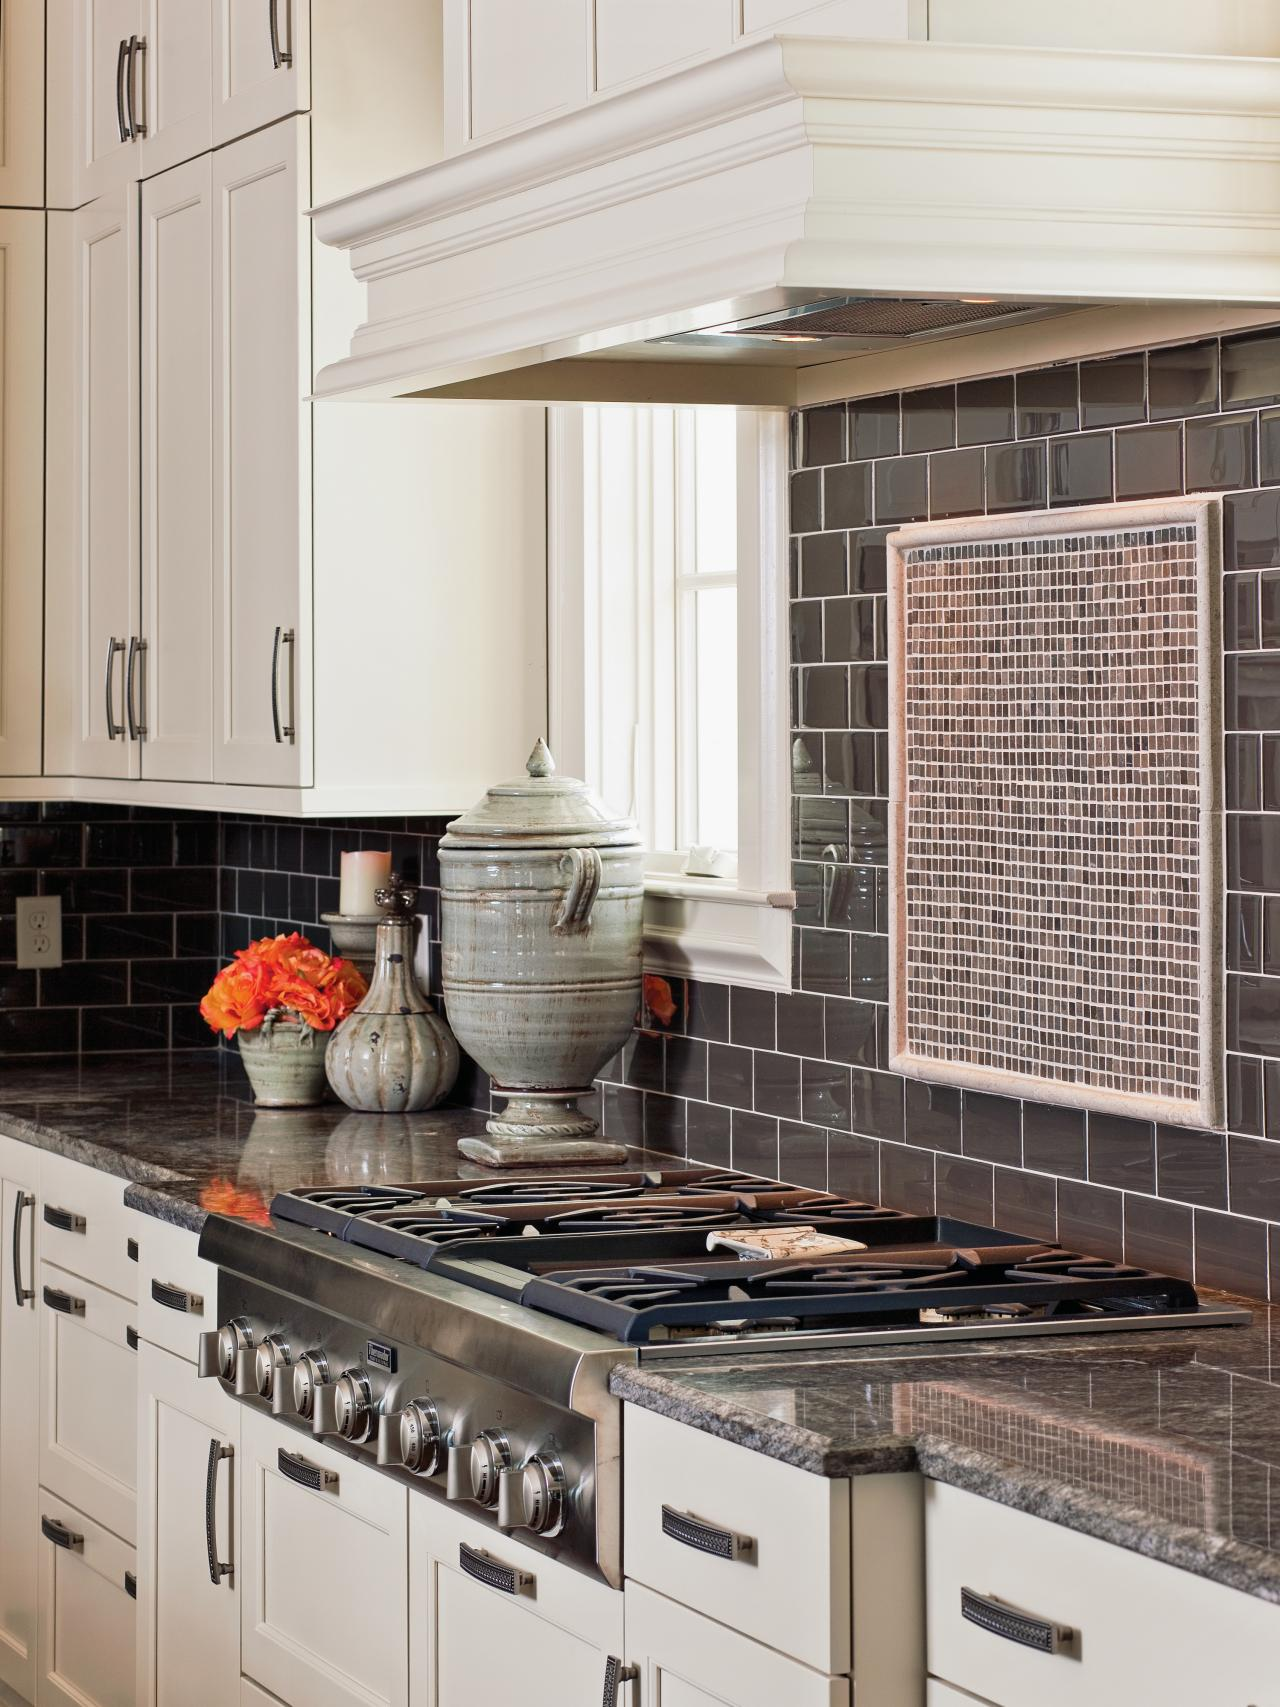 Kitchen Backsplash Subway Tile subway tile backsplashes: pictures, ideas & tips from hgtv | hgtv